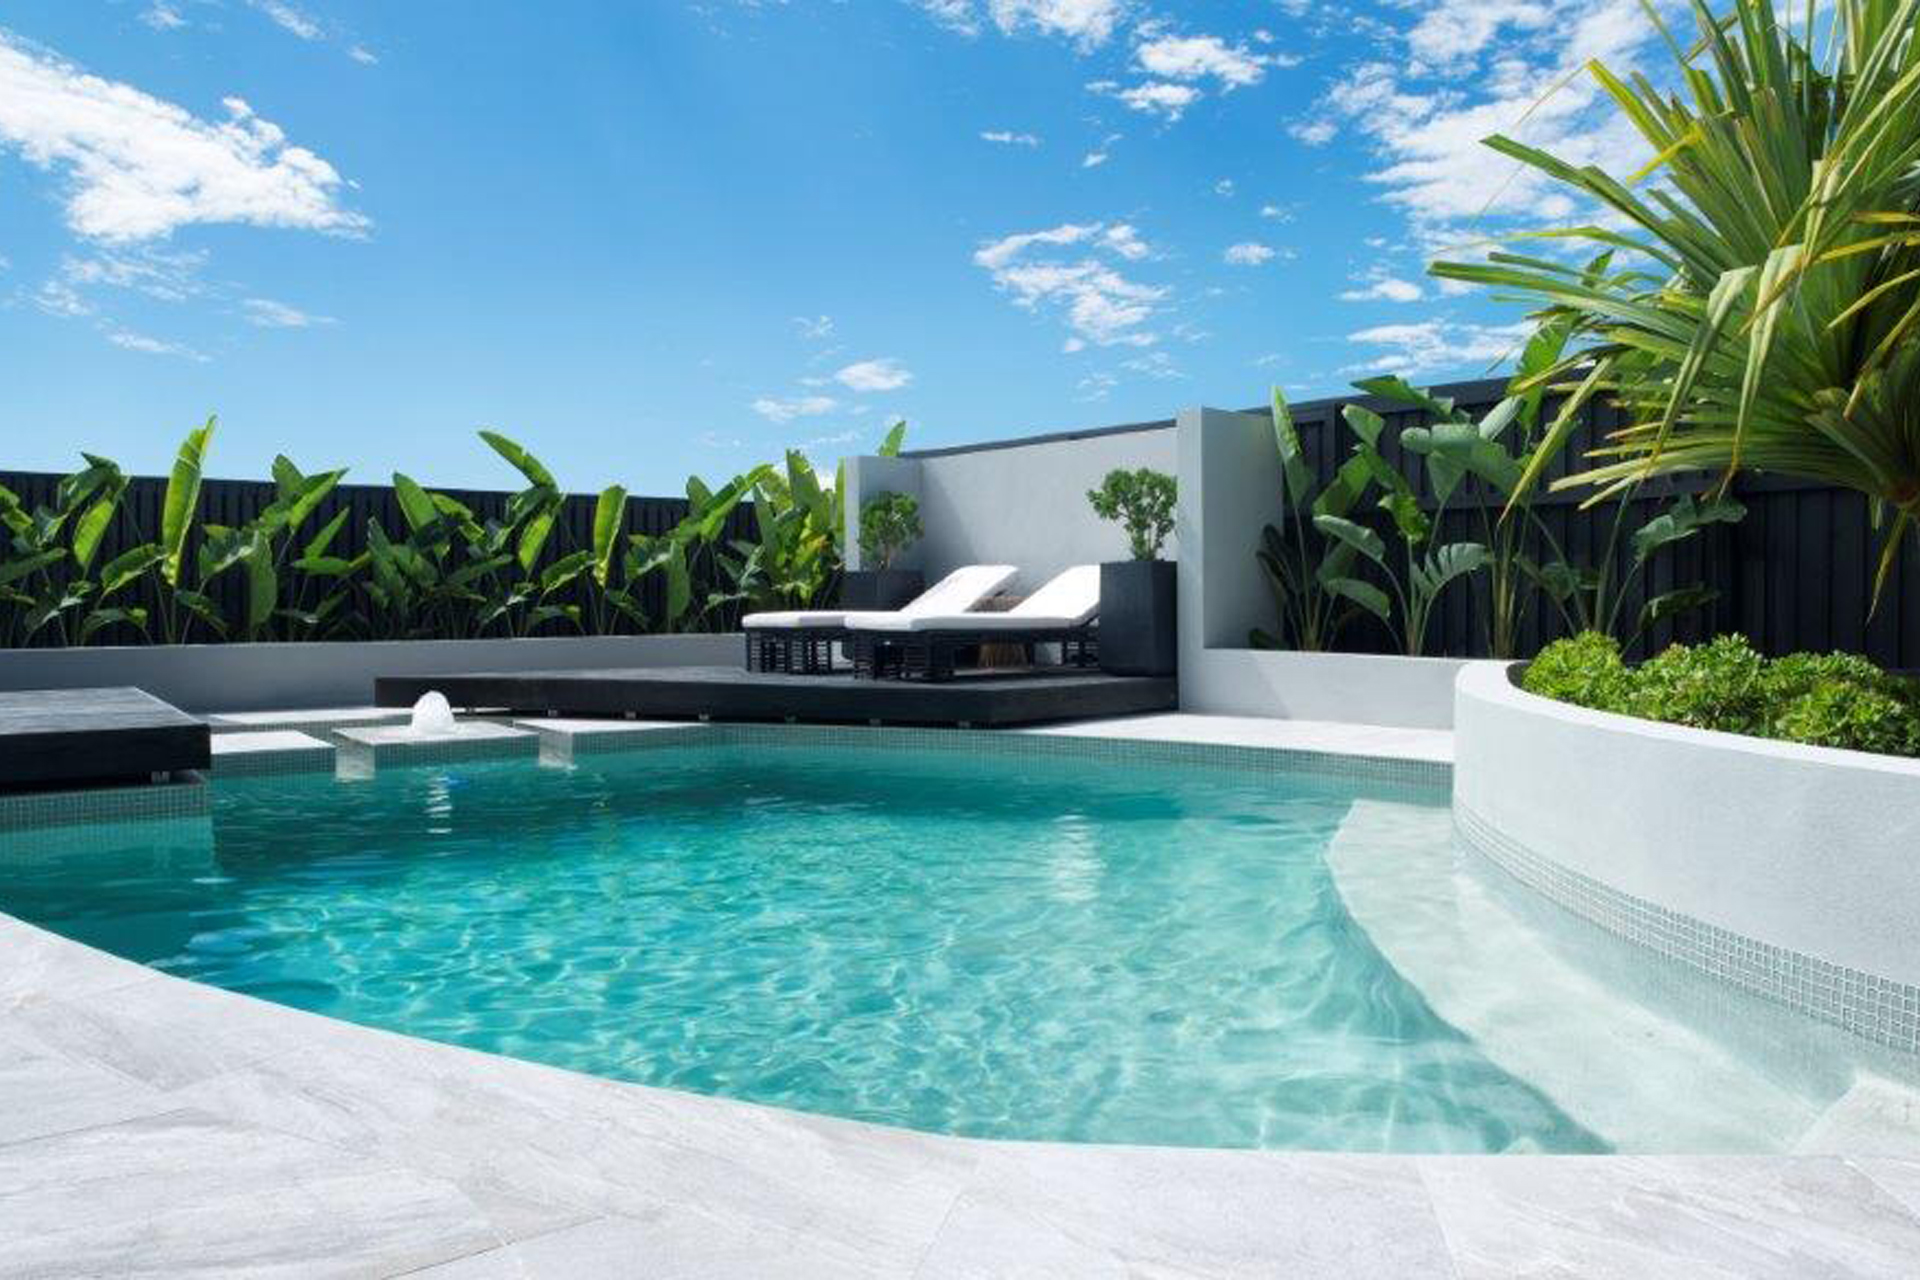 EXCLUSIVE CANAL LUXURY HOME - OVER 50 METER CANAL FRONTAGE